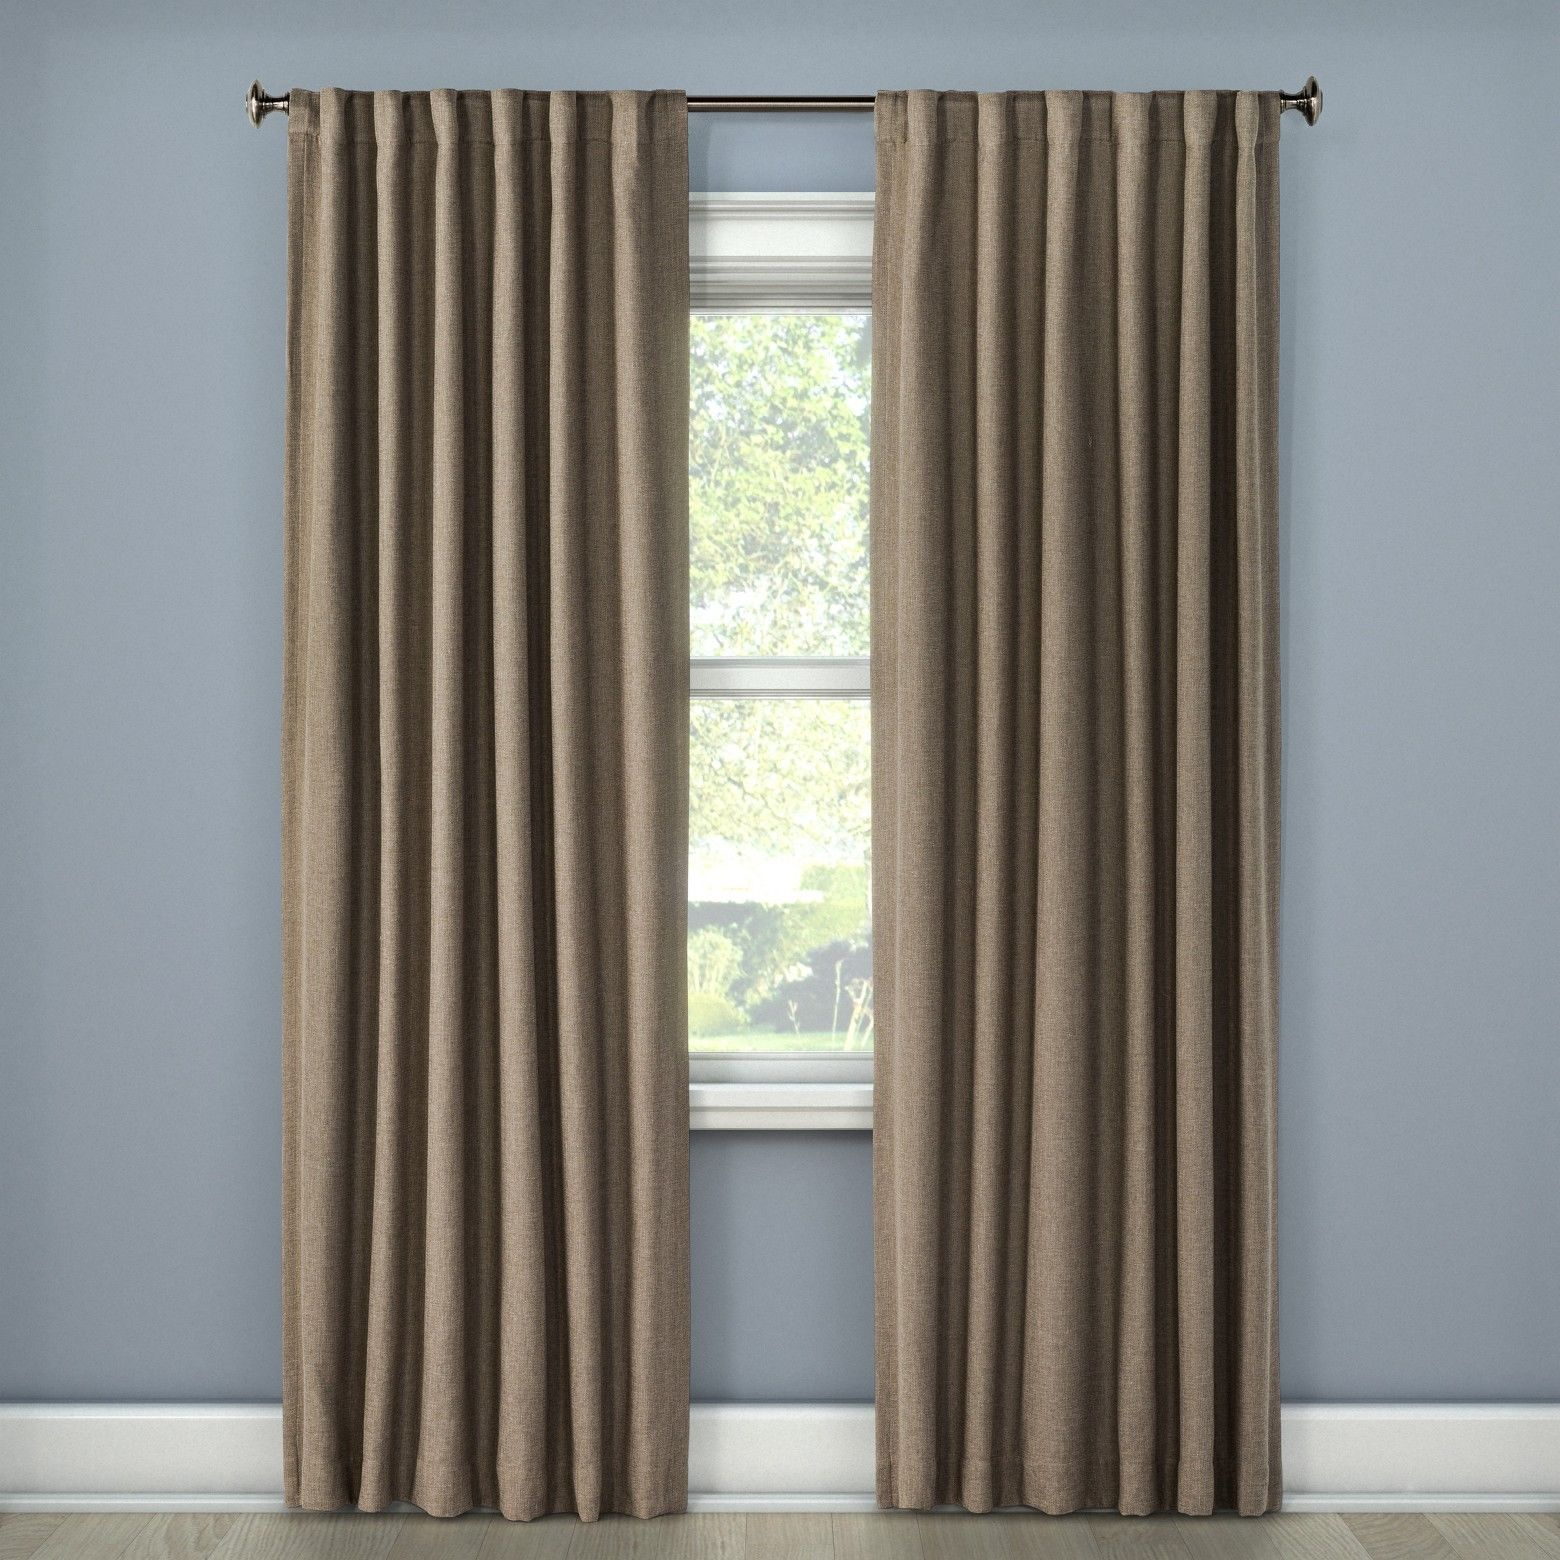 Linen Look Lightblocking Curtain Panel Stone 50 X84 Threshold Nwop